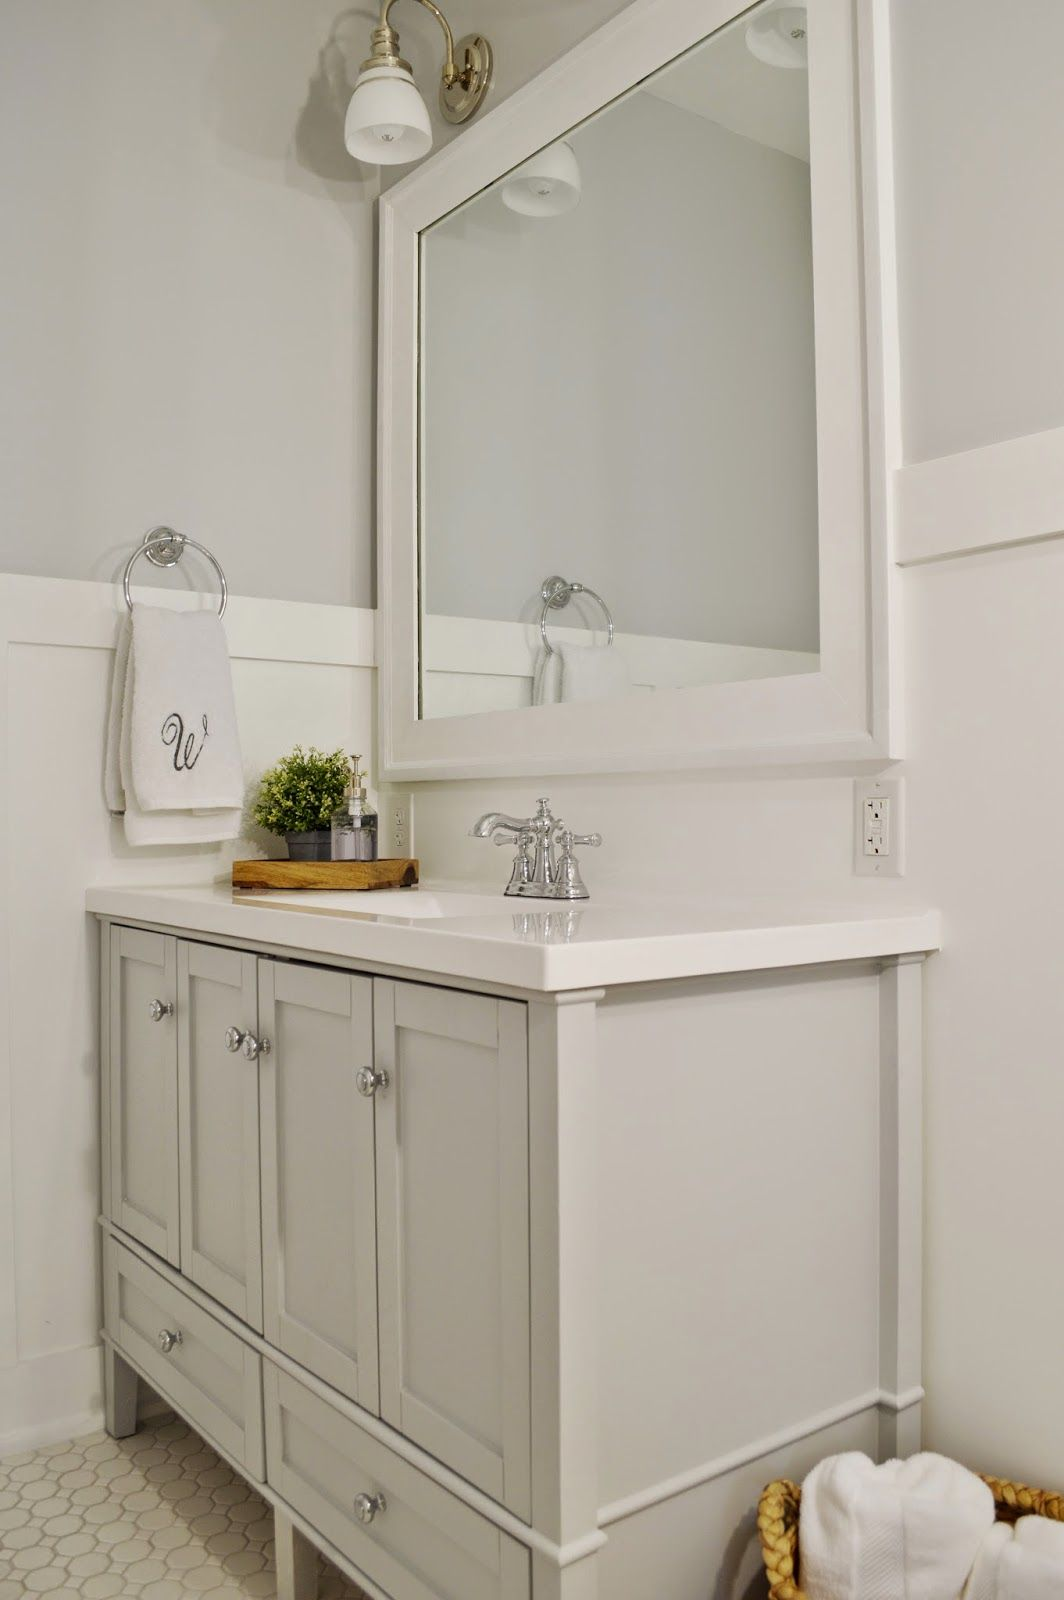 724 South House The Finished Bathroom Classic Bathroom Small Bathroom Vanities Wooden Bathroom Vanity